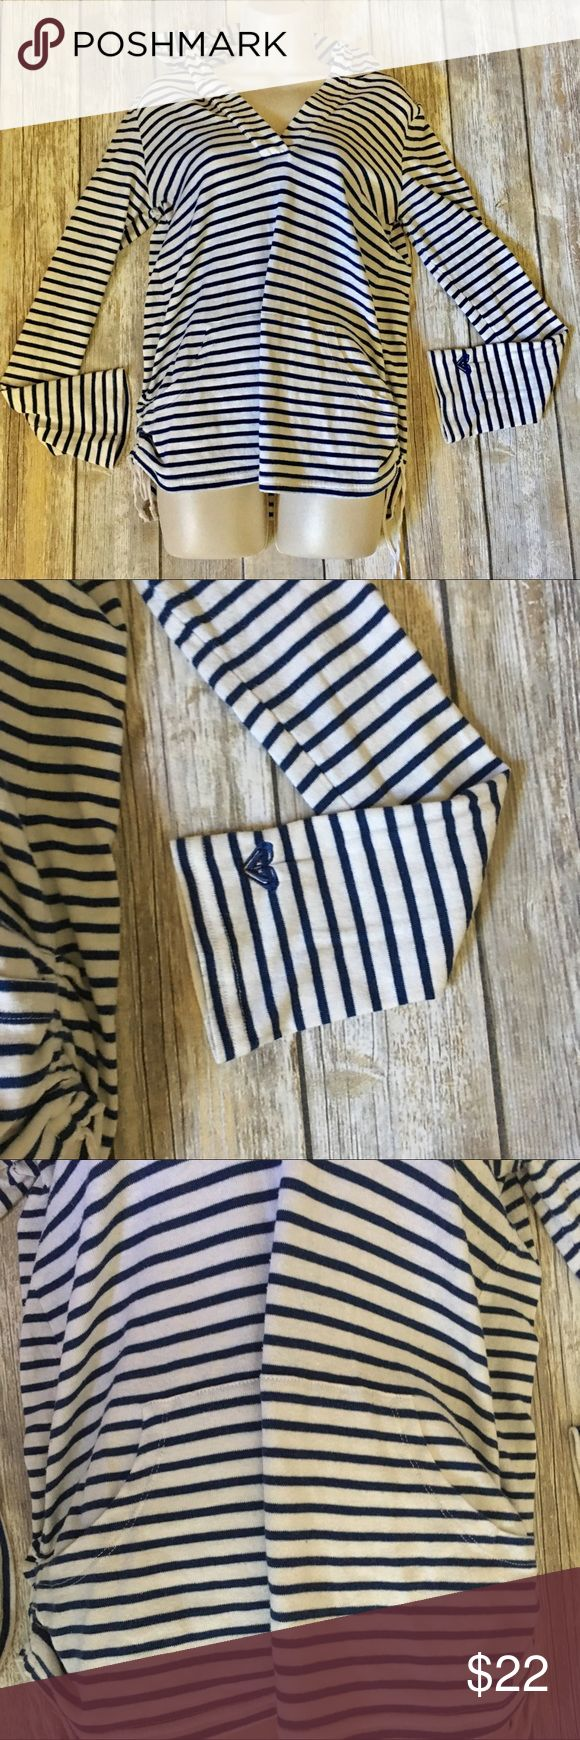 🍒Roxy Stripped Hooded Sweater Beautiful light sweater with hood. . Ties on sides has single hand pocket. Size large. In excellent used condition. Blue and white in color. Flattering v neck line. Roxy Tops Sweatshirts & Hoodies